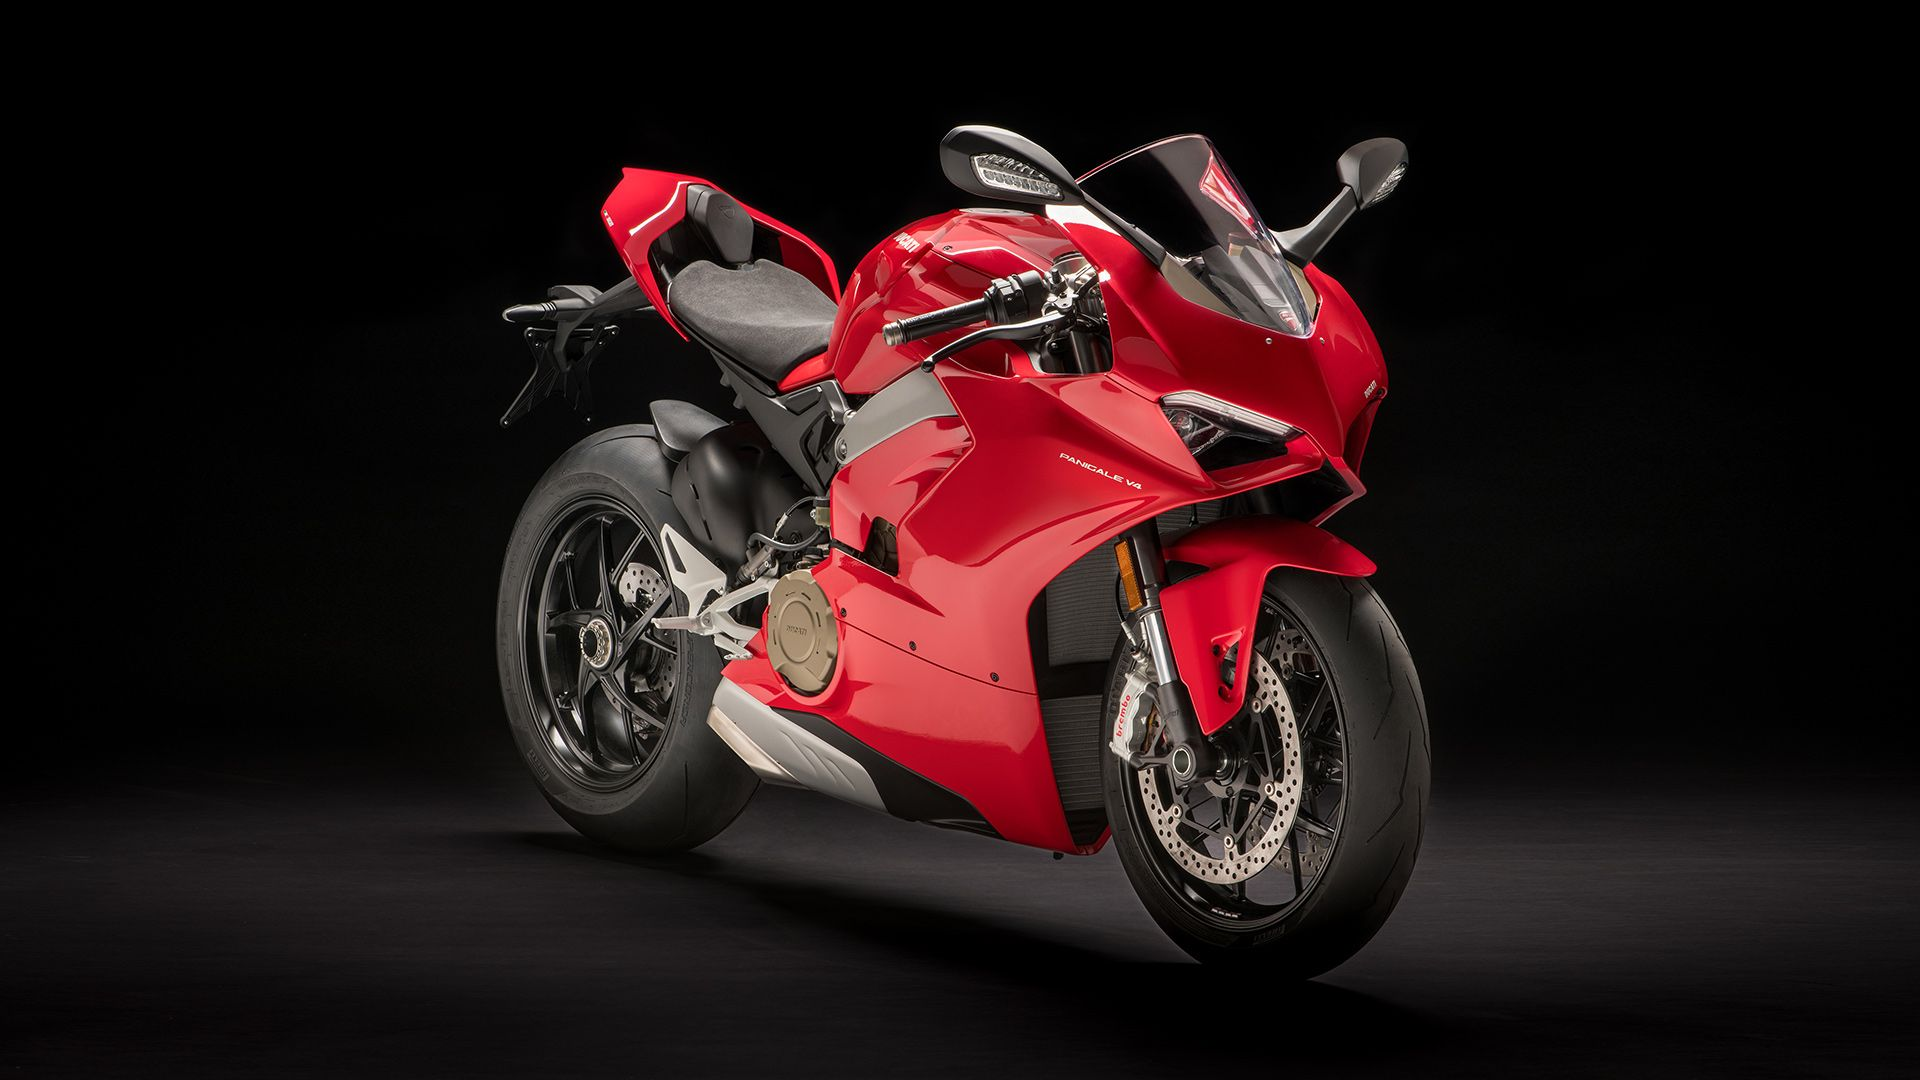 Ducati Superbike Panigale No Room For Compromise Ducati